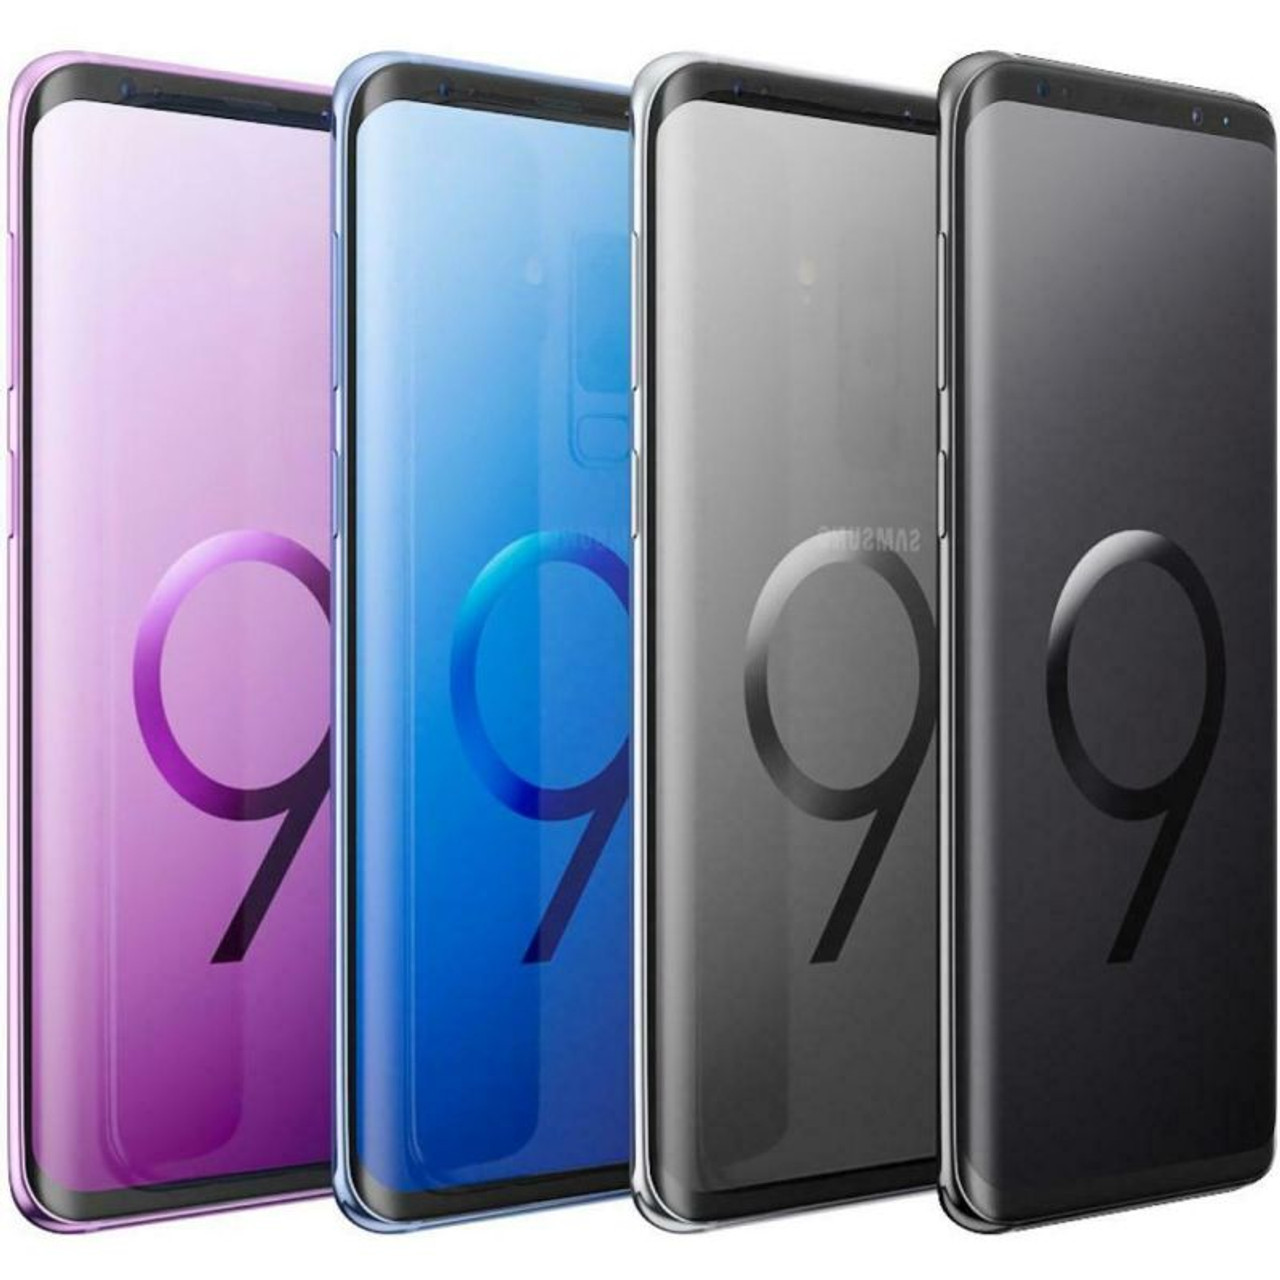 Samsung Galaxy S9 64GB Factory Unlocked Android Smartphone